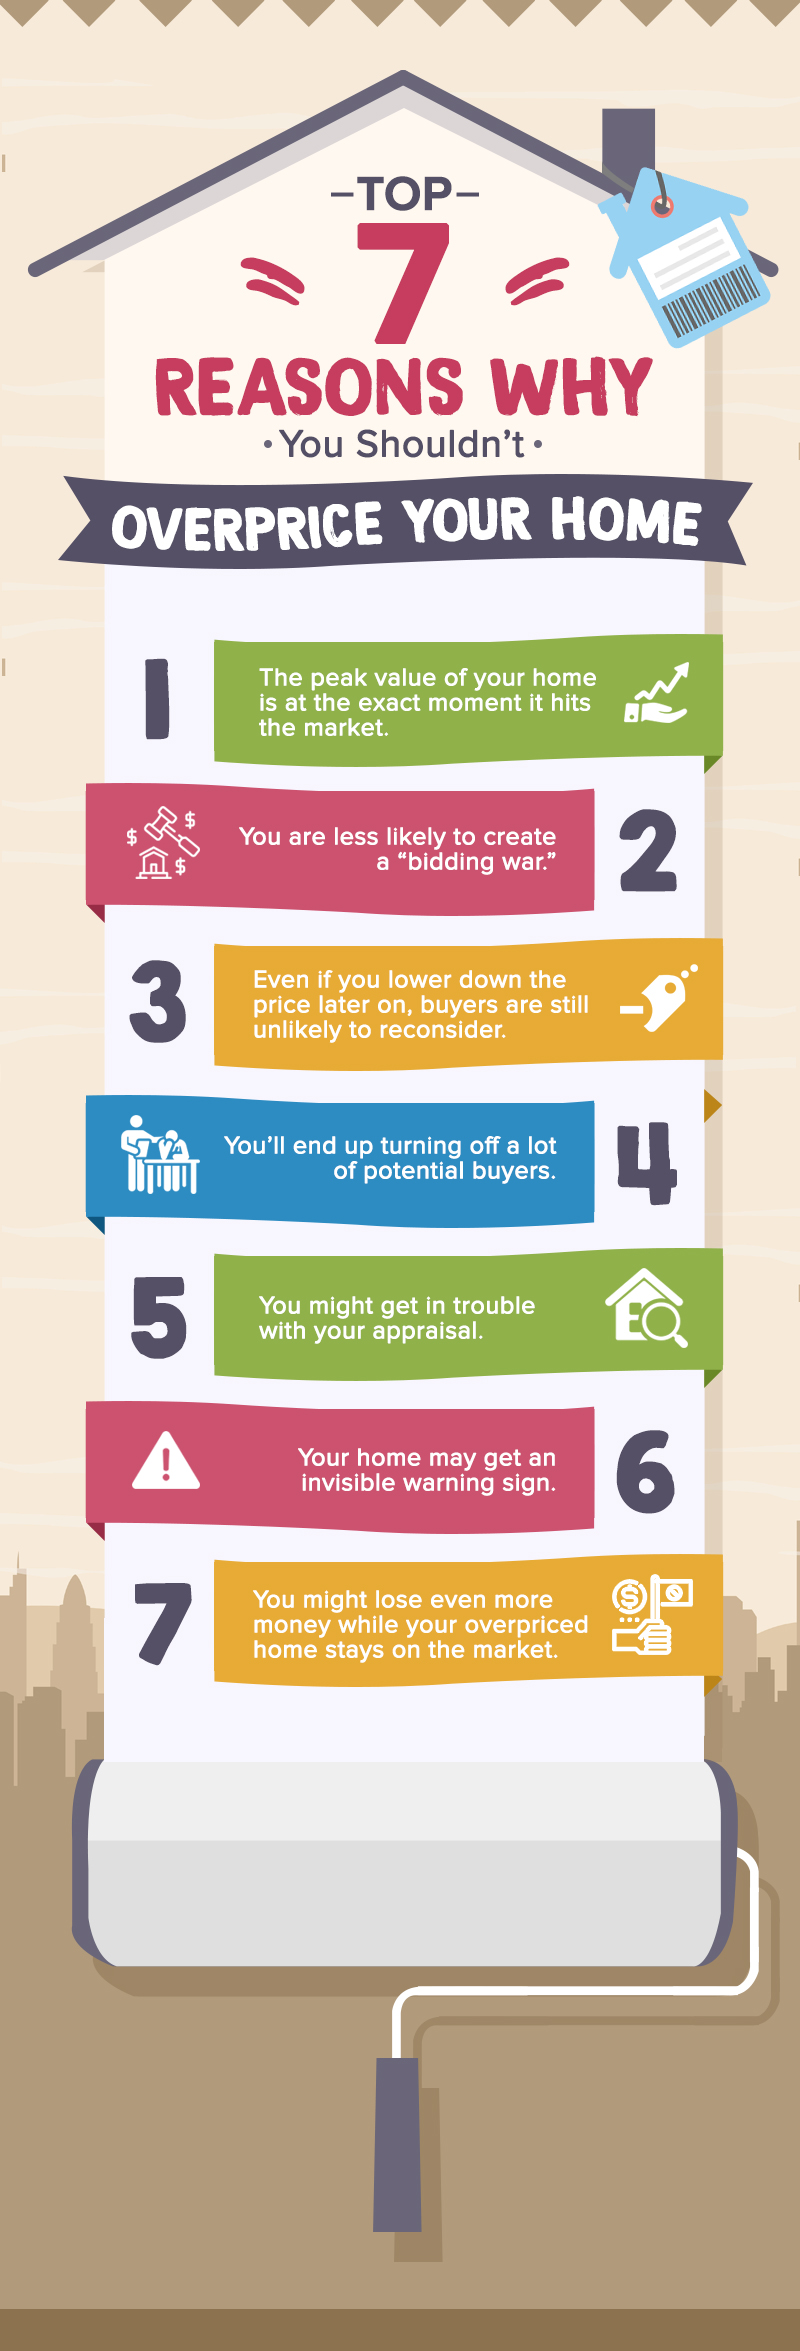 Top 7 Reasons Why You Shouldn't Overprice Your Home